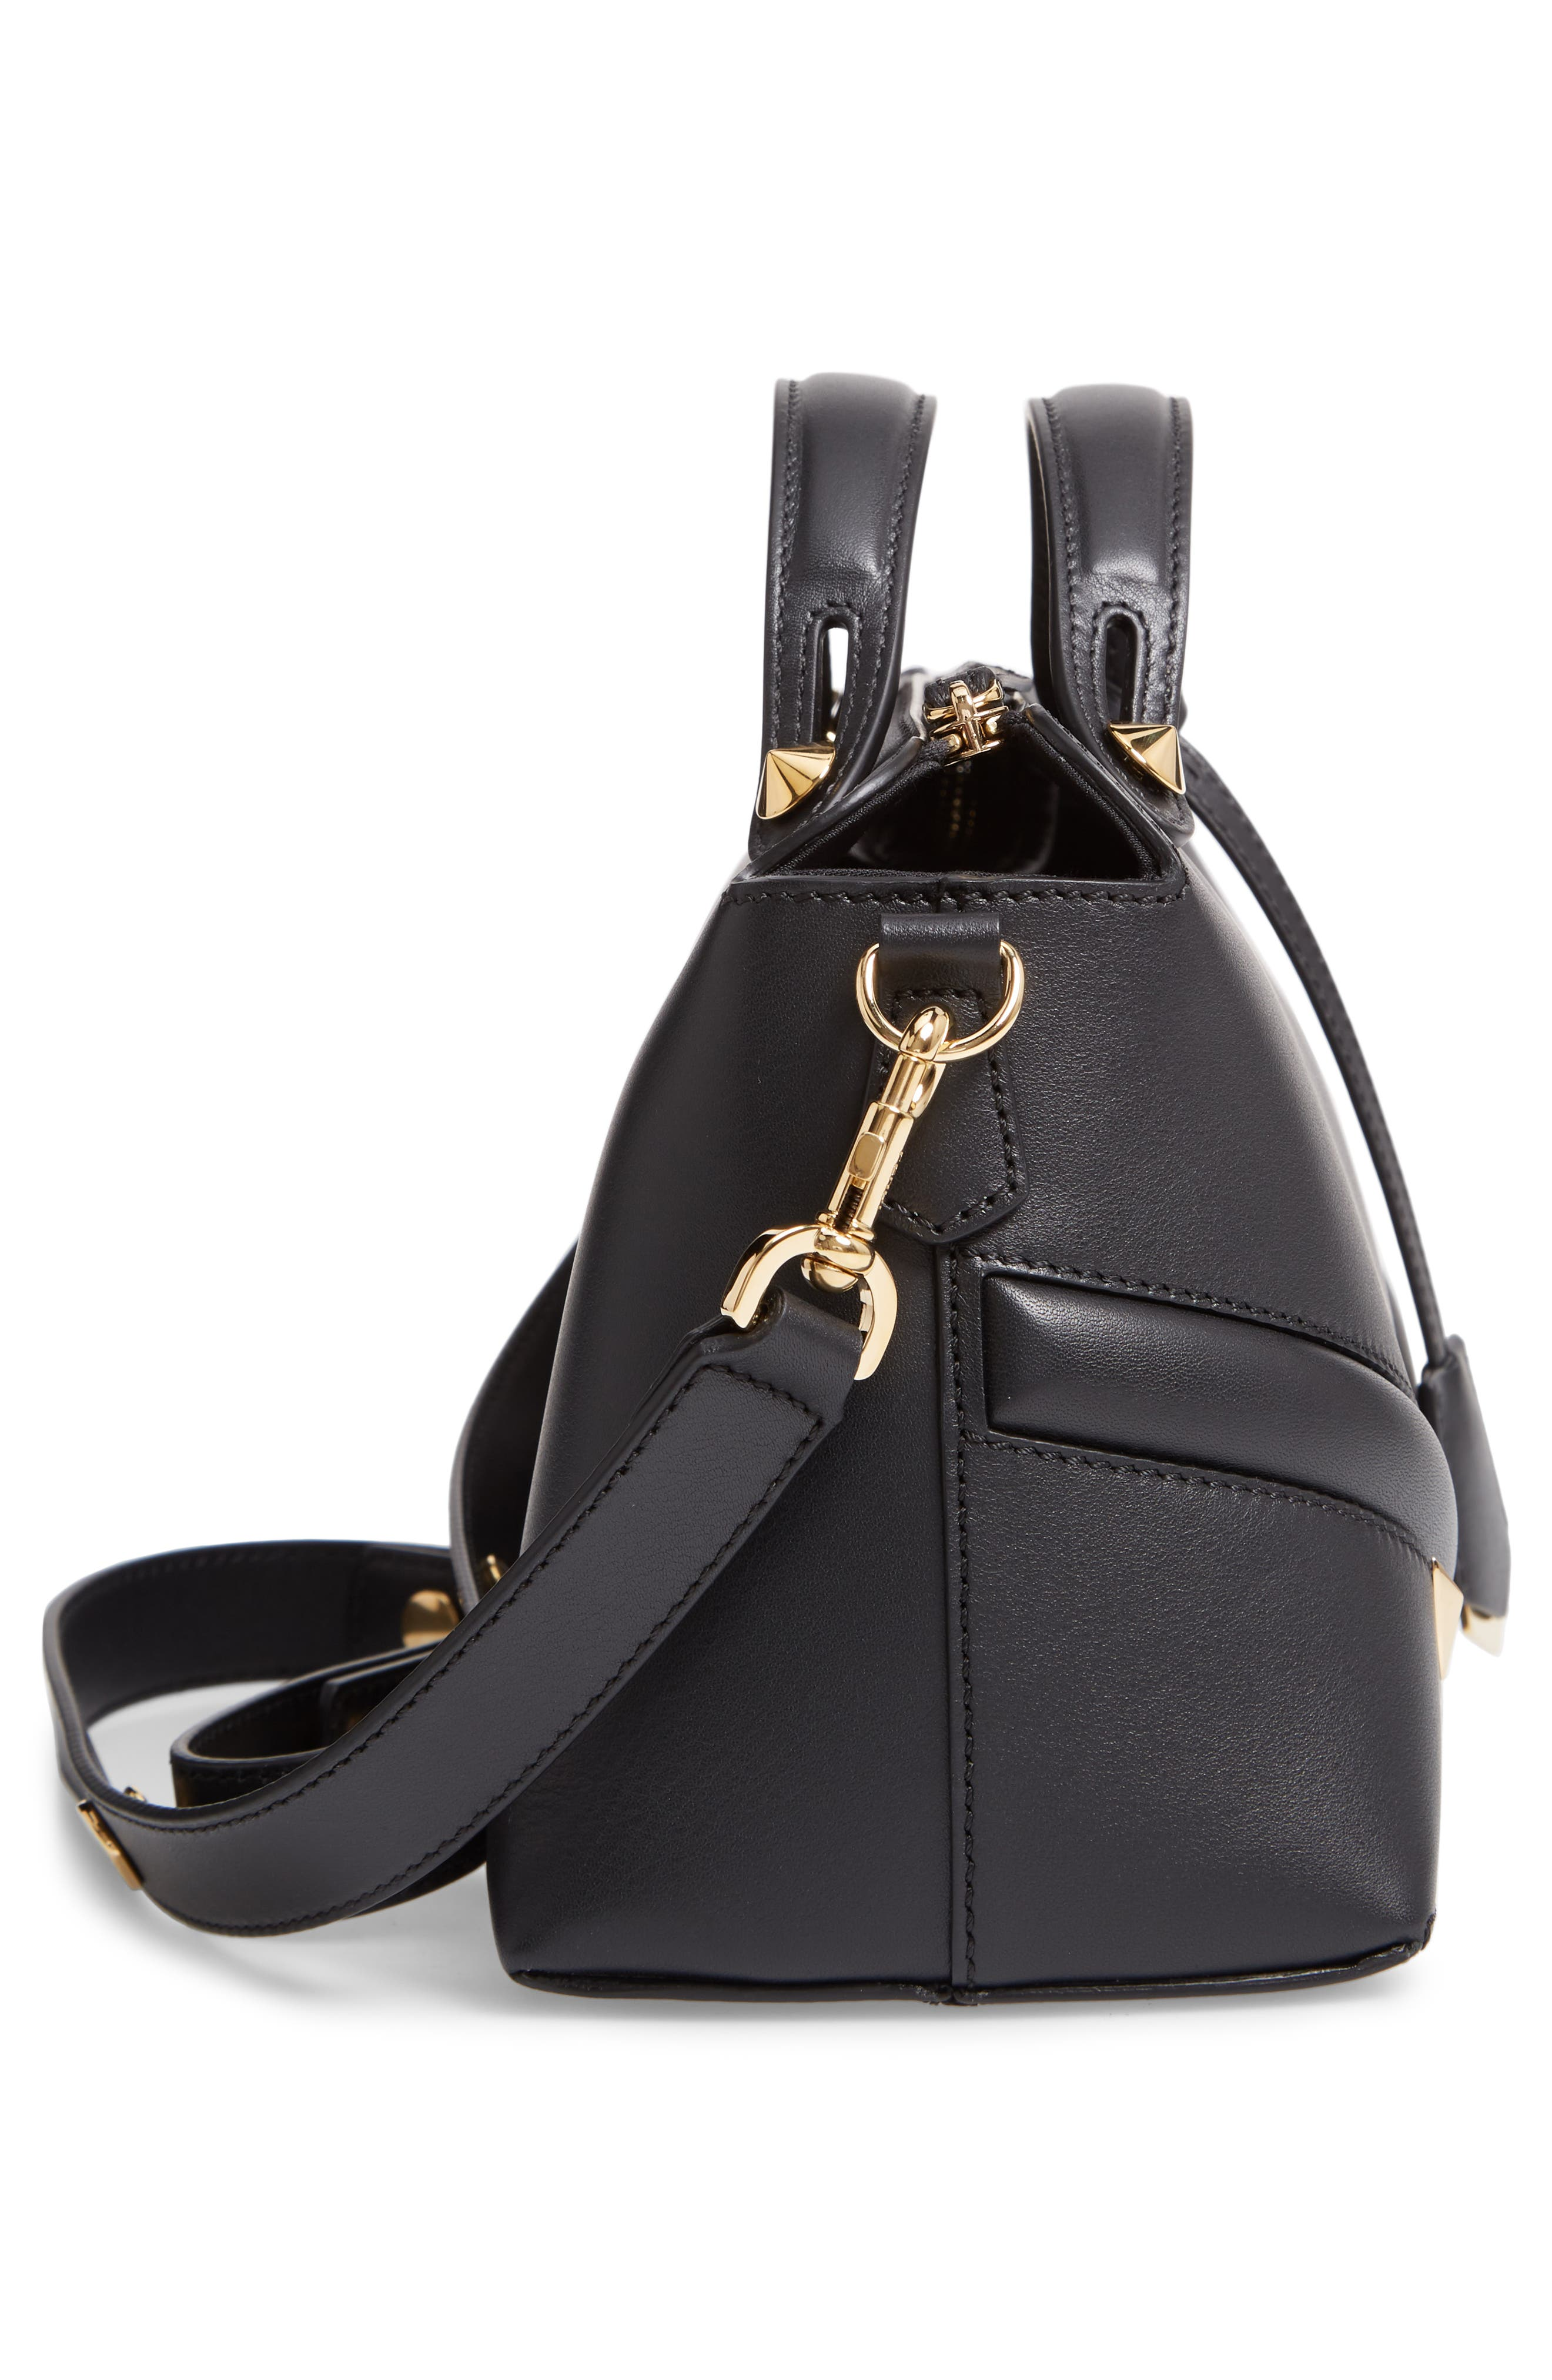 By the Way - Wonders Convertible Leather Shoulder Bag,                             Alternate thumbnail 5, color,                             NERO/ ORO SOFT